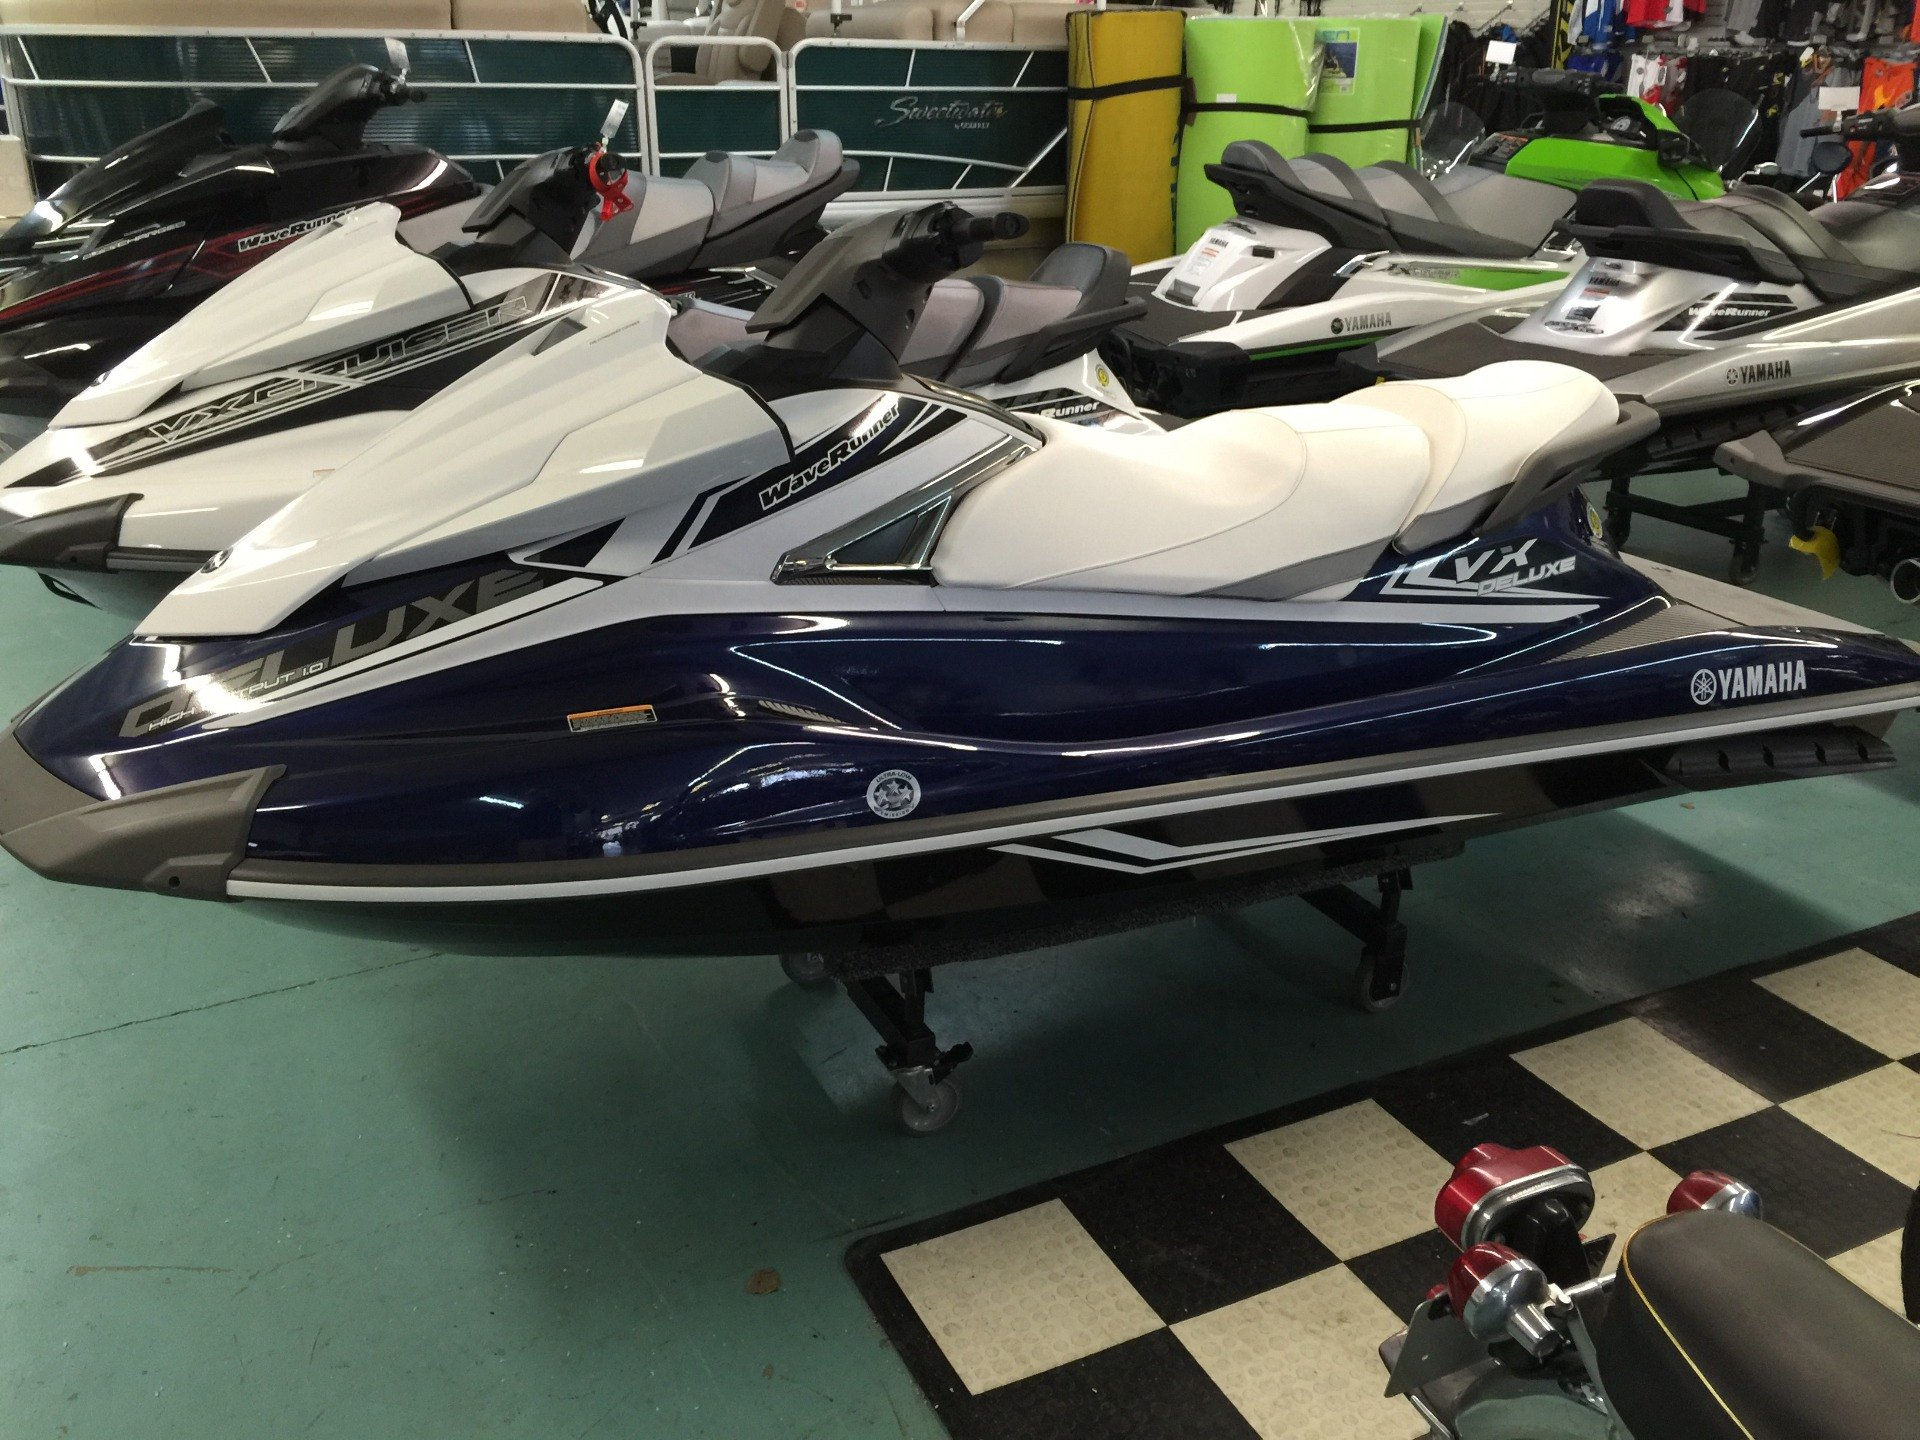 2016 Yamaha VX Deluxe for sale 3251